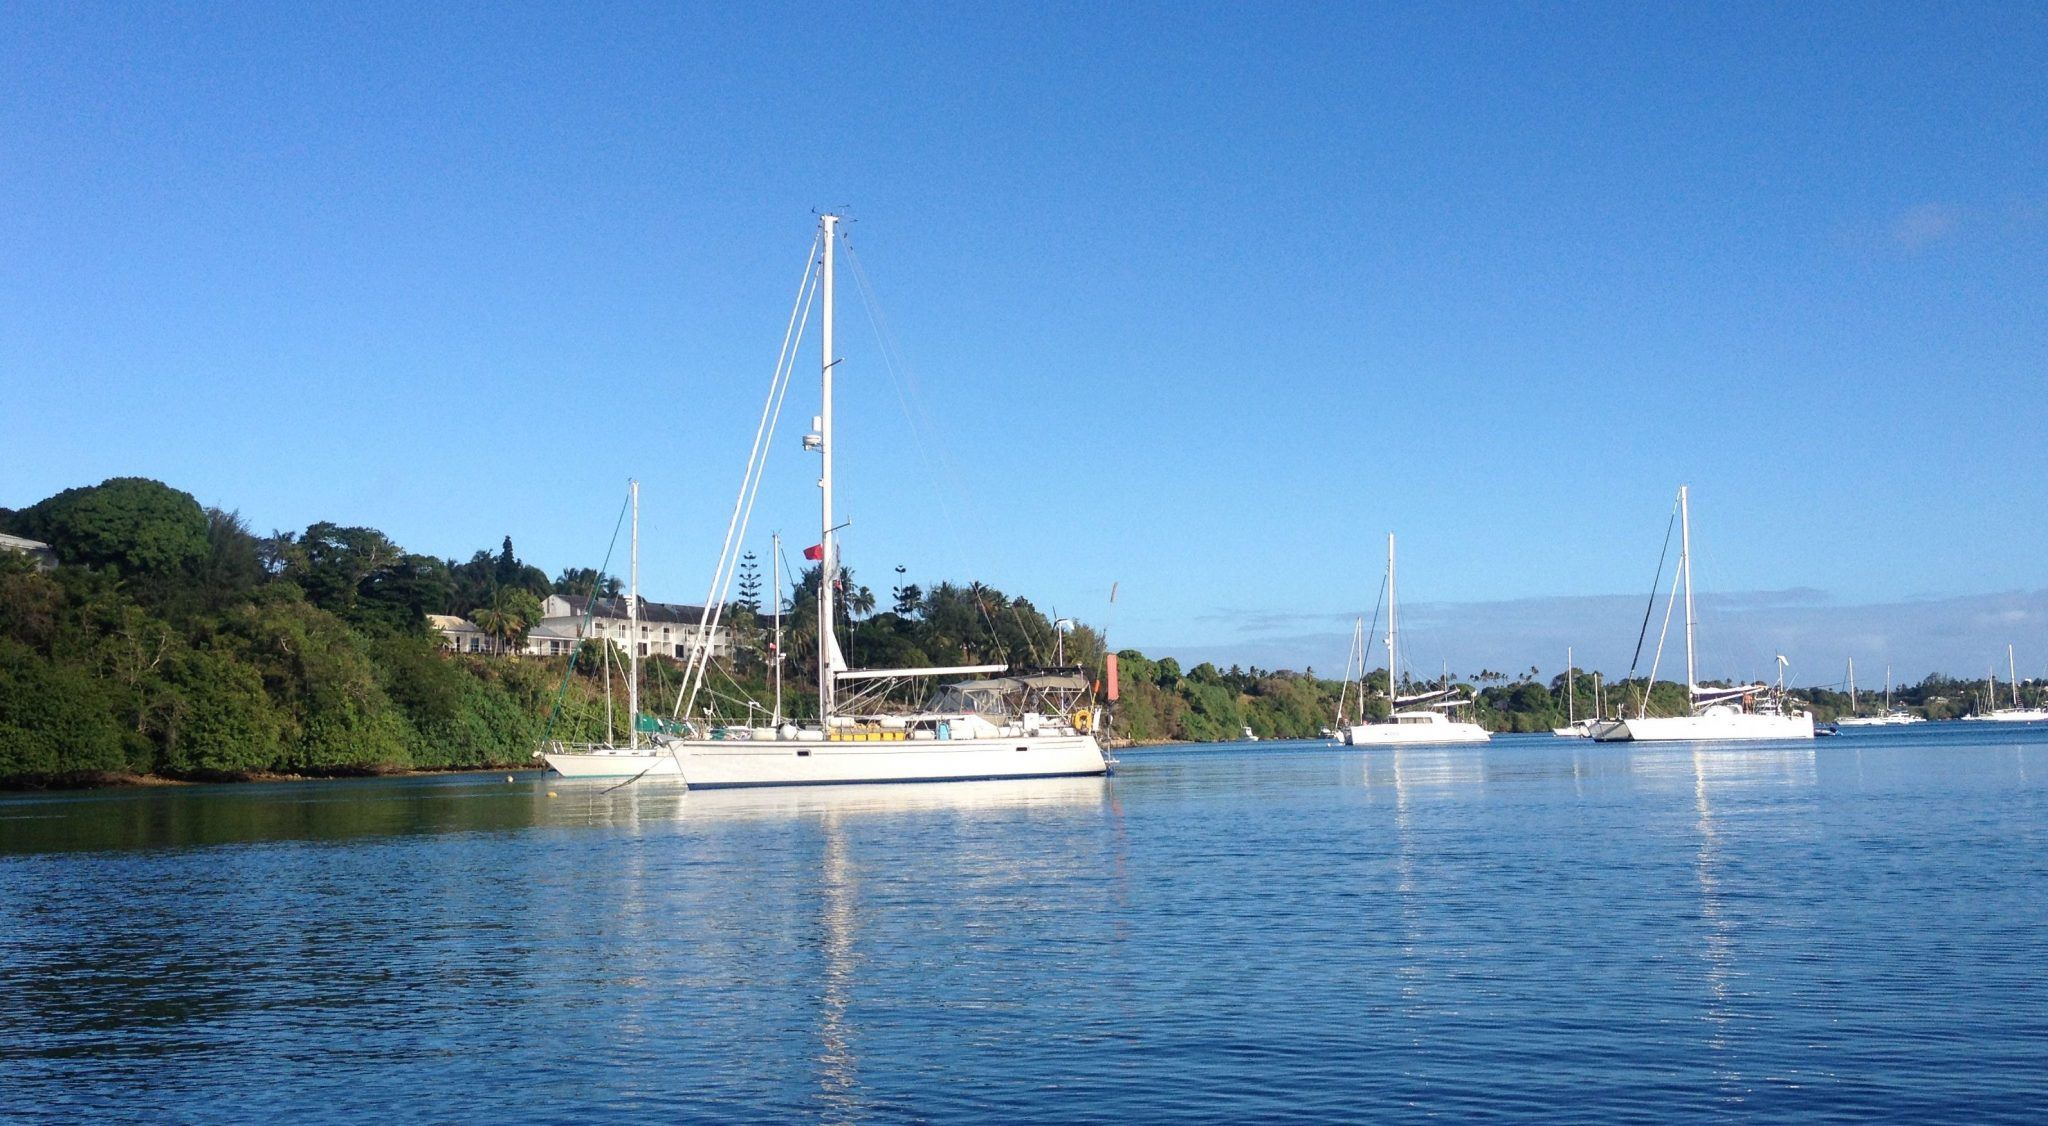 62. Joyful at her peaceful mooring in Vava'u, Tonga